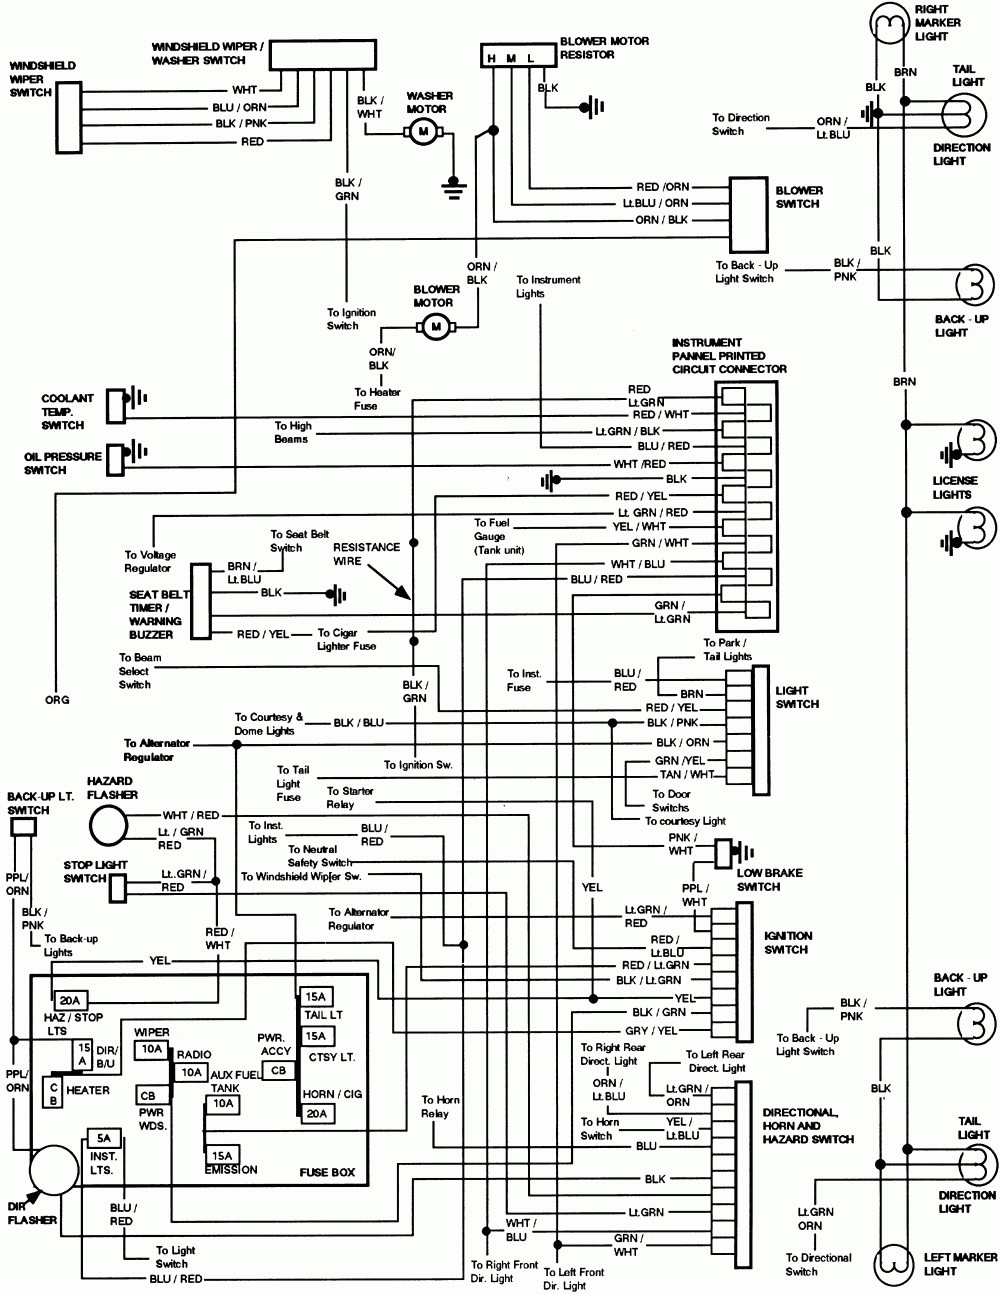 1996 F700 Wiring Diagram Wiring Diagram Schematics Wiring-Diagram Ford  Fiesta 1987 Ford E250 Wiring Diagram